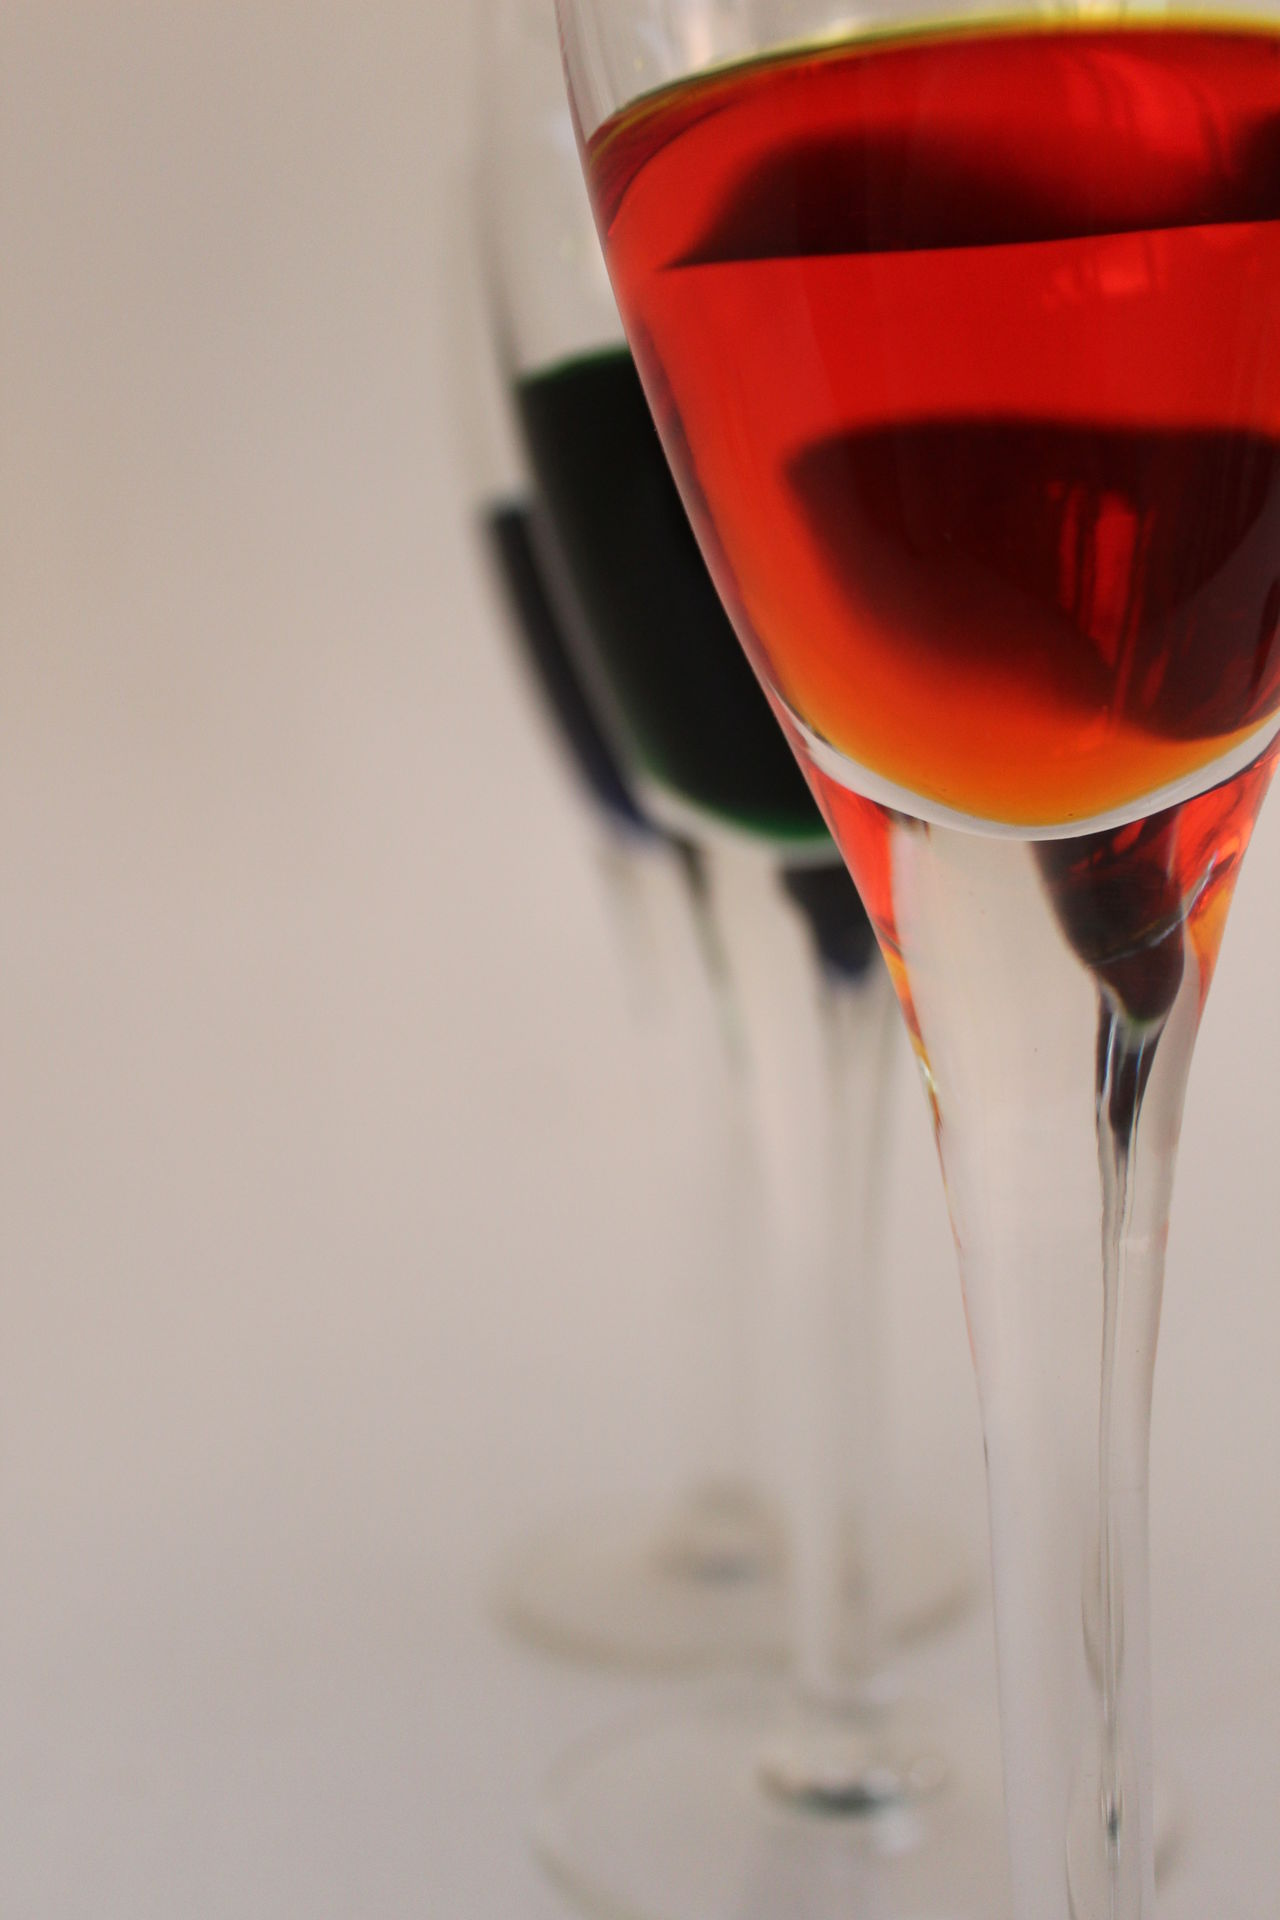 Close-up Day Drink Dripping Food And Drink Freshness Indoors  No People Red Refreshment Wine Wineglass